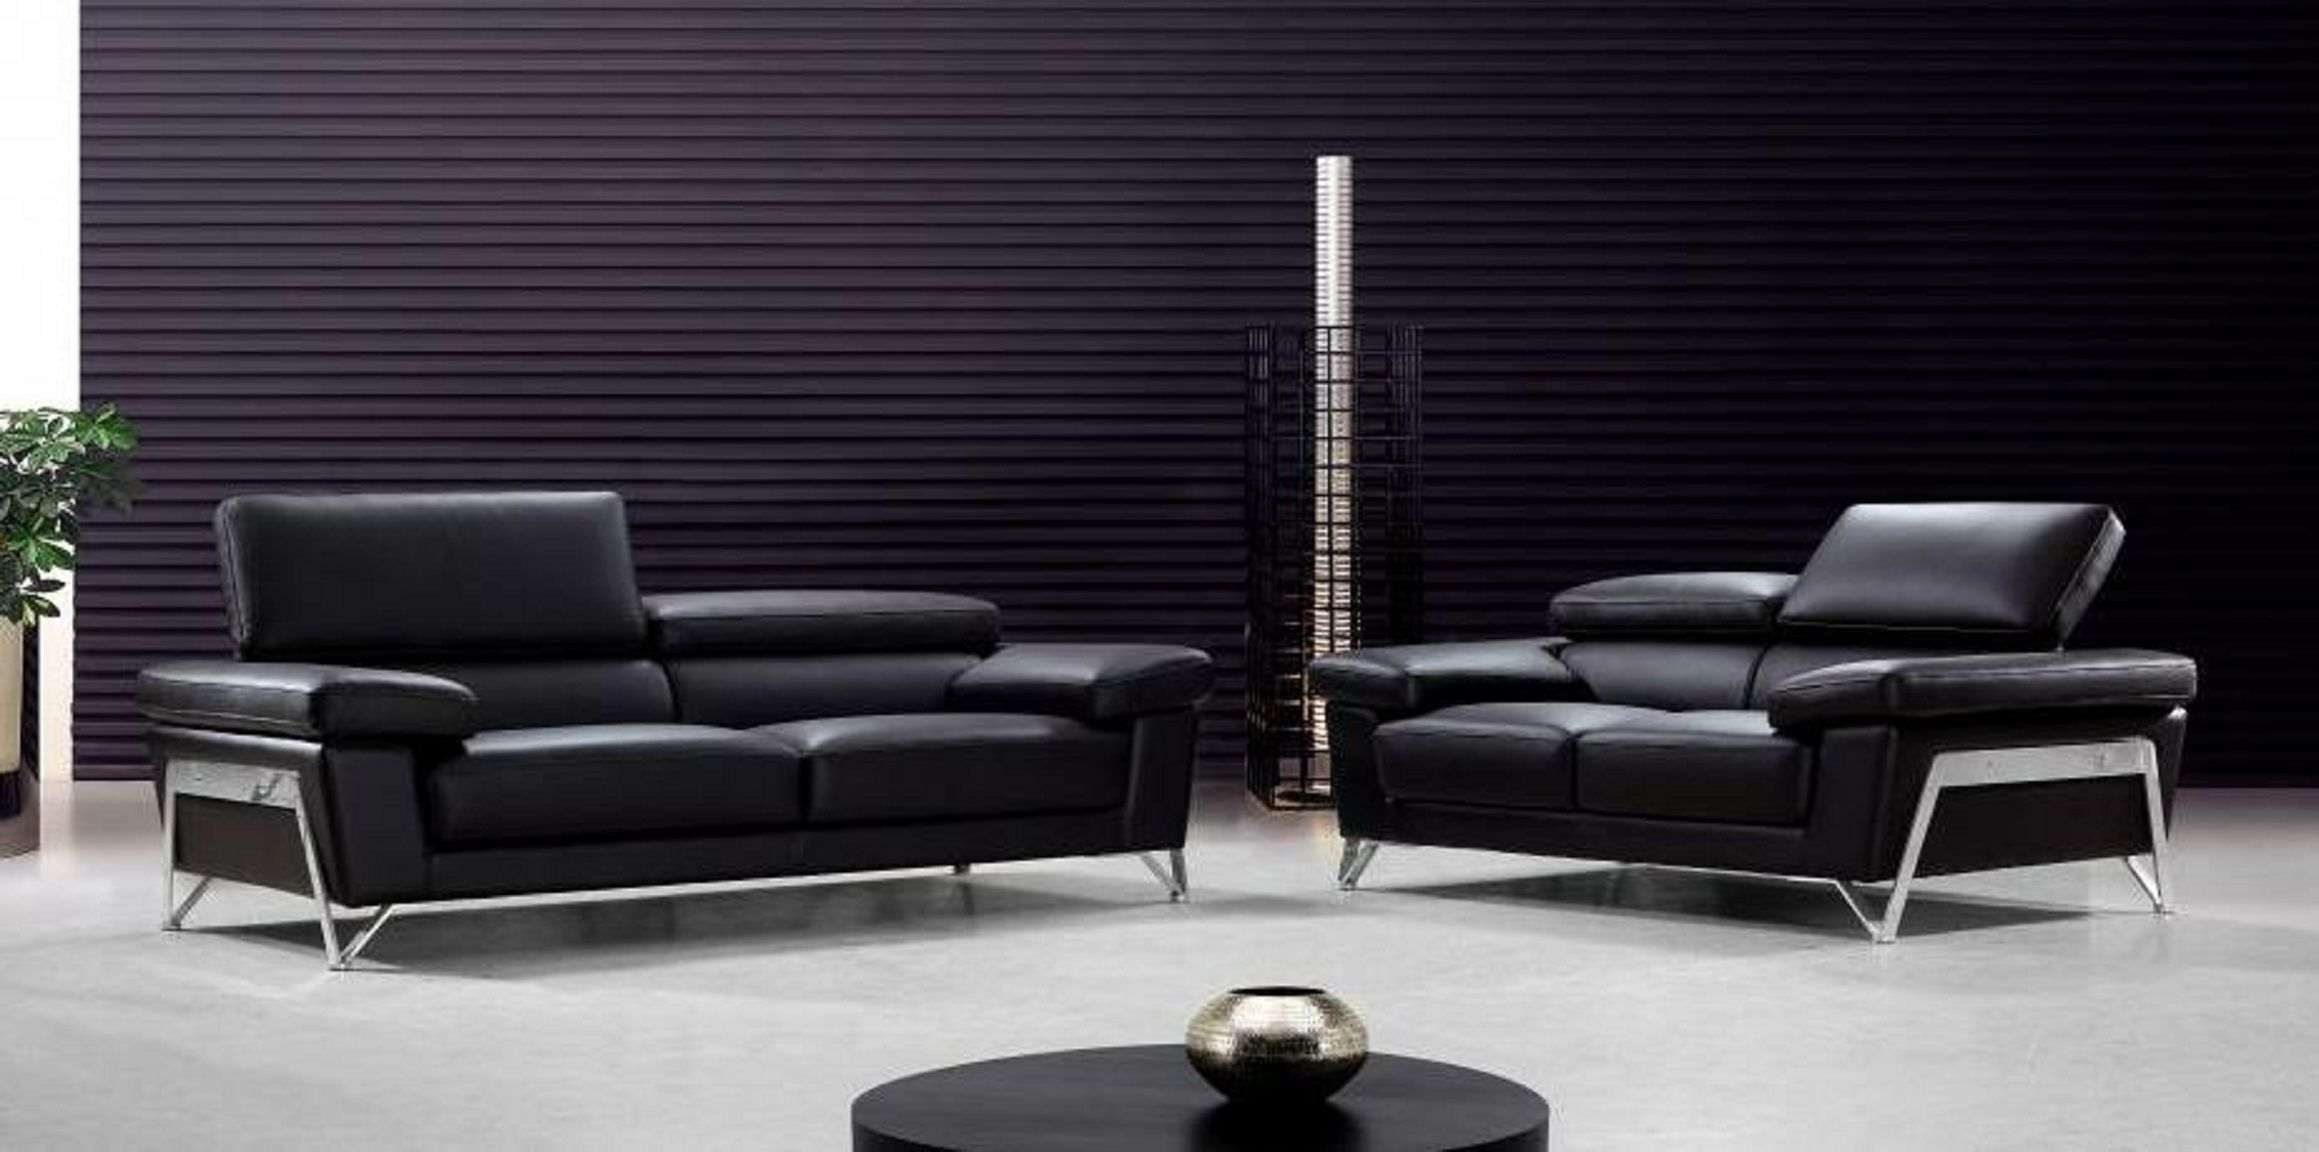 Vancouver Sofa Company Bringing You The Most Affordable Furniture